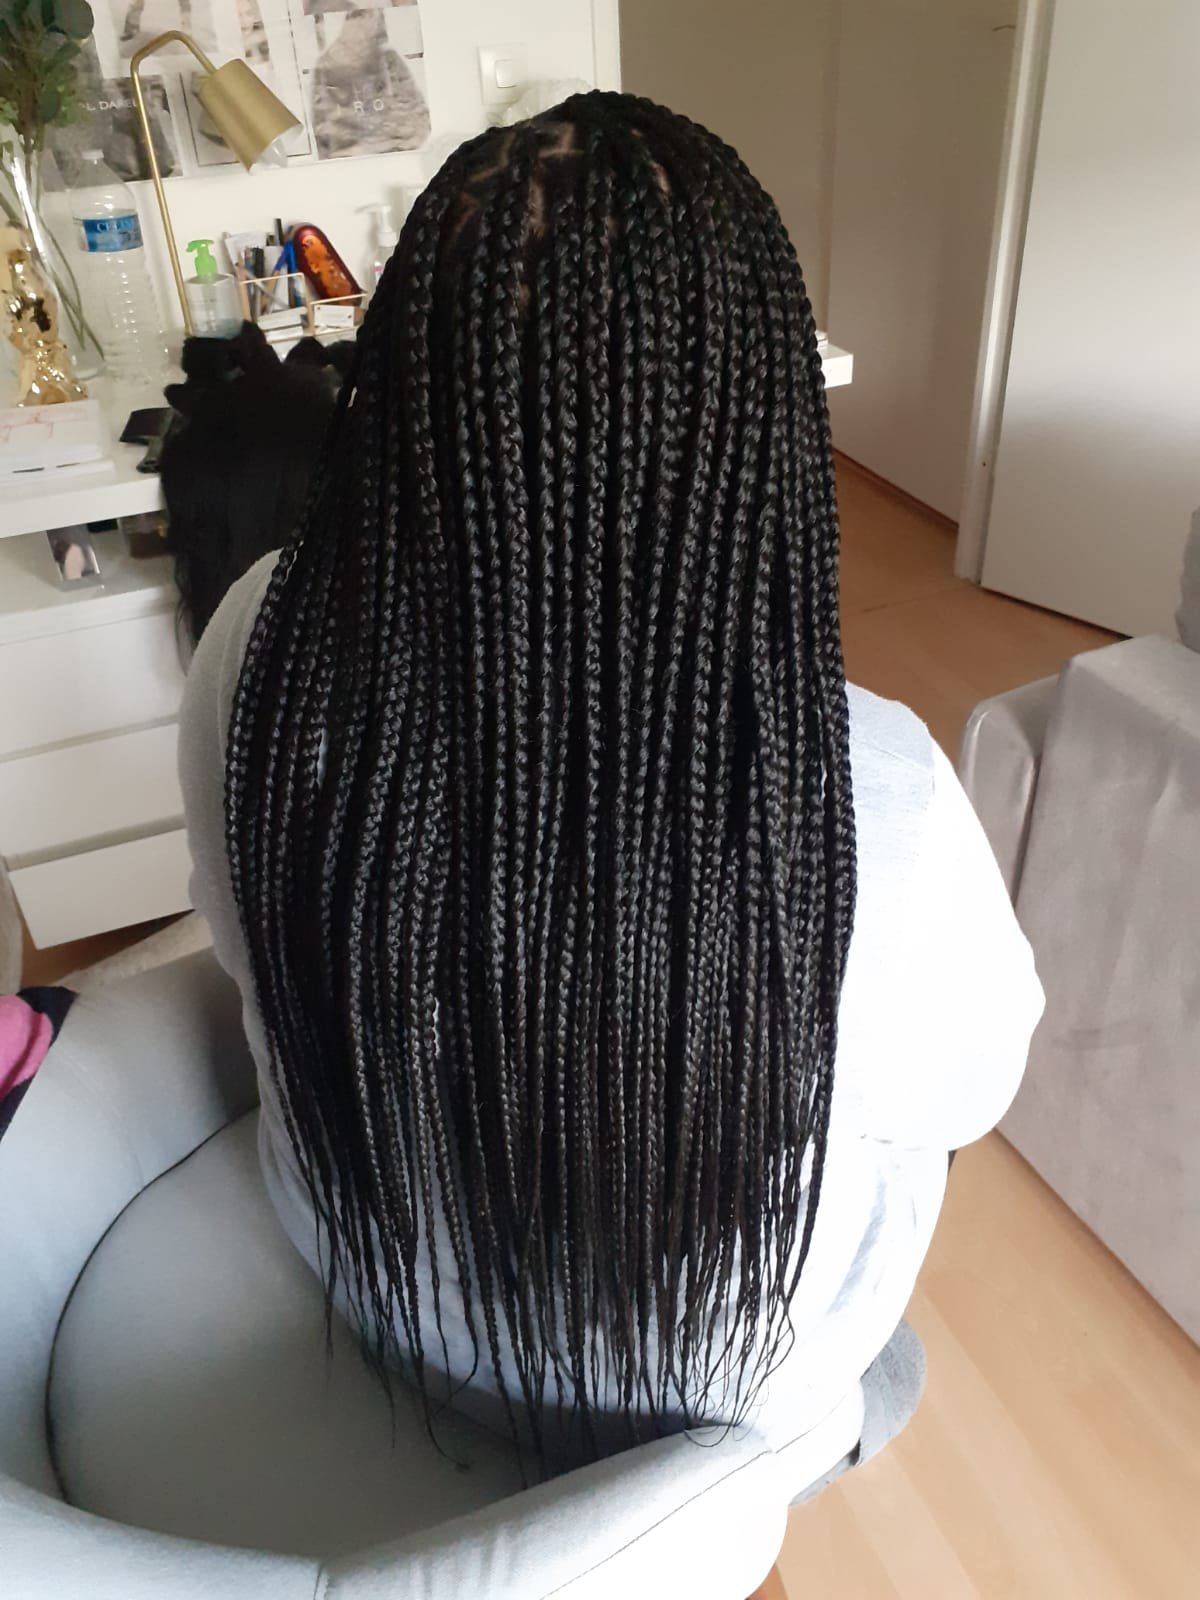 salon de coiffure afro tresse tresses box braids crochet braids vanilles tissages paris 75 77 78 91 92 93 94 95 ALXNYQXF